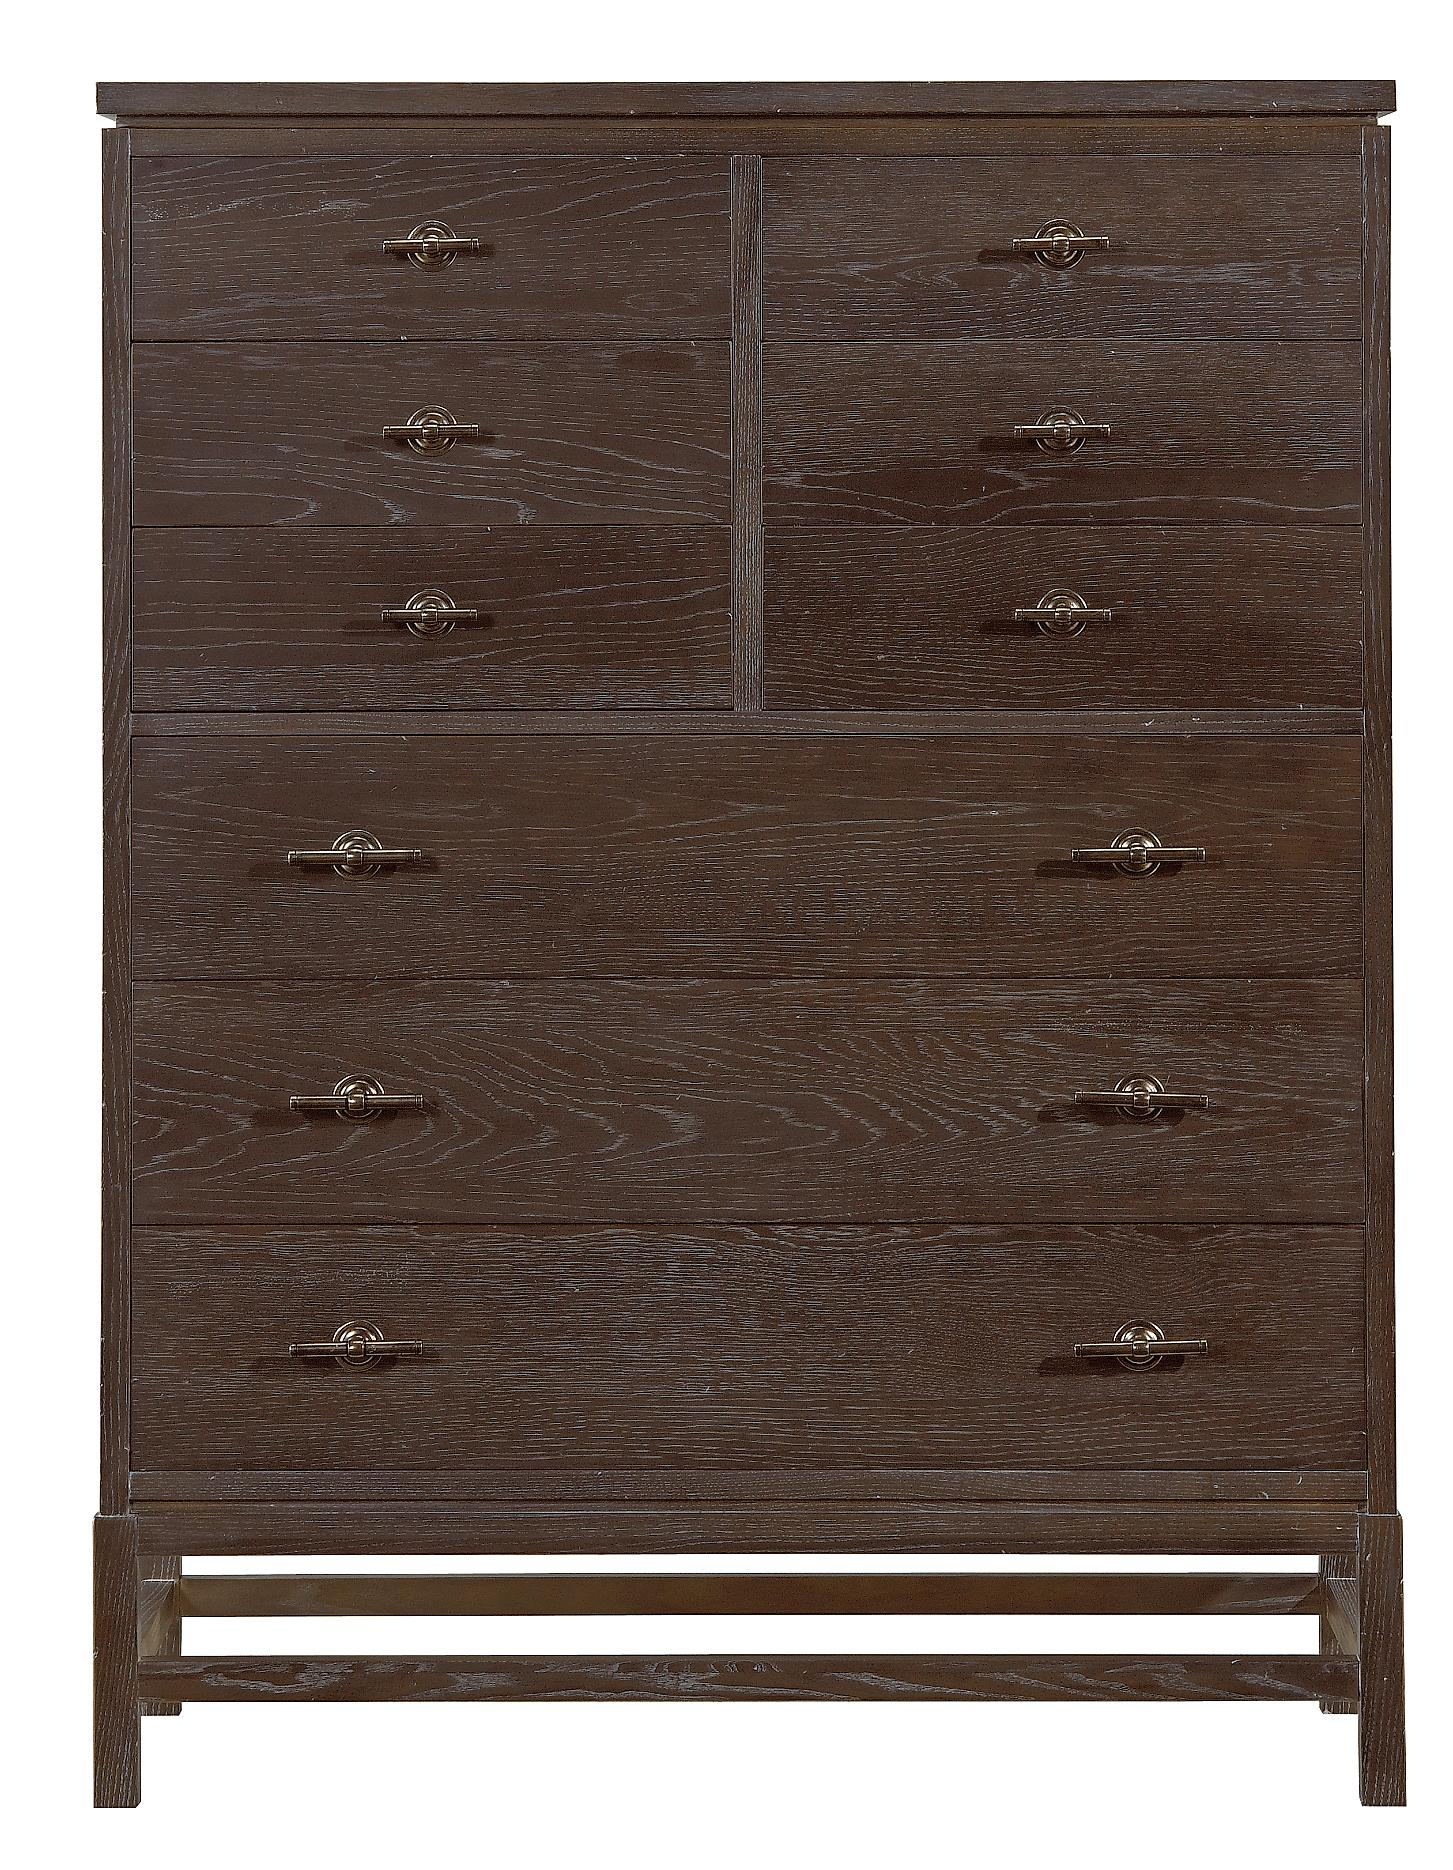 Stanley Furniture Coastal Living Resort Tranquility Isle Drawer Chest - Item Number: 062-13-13